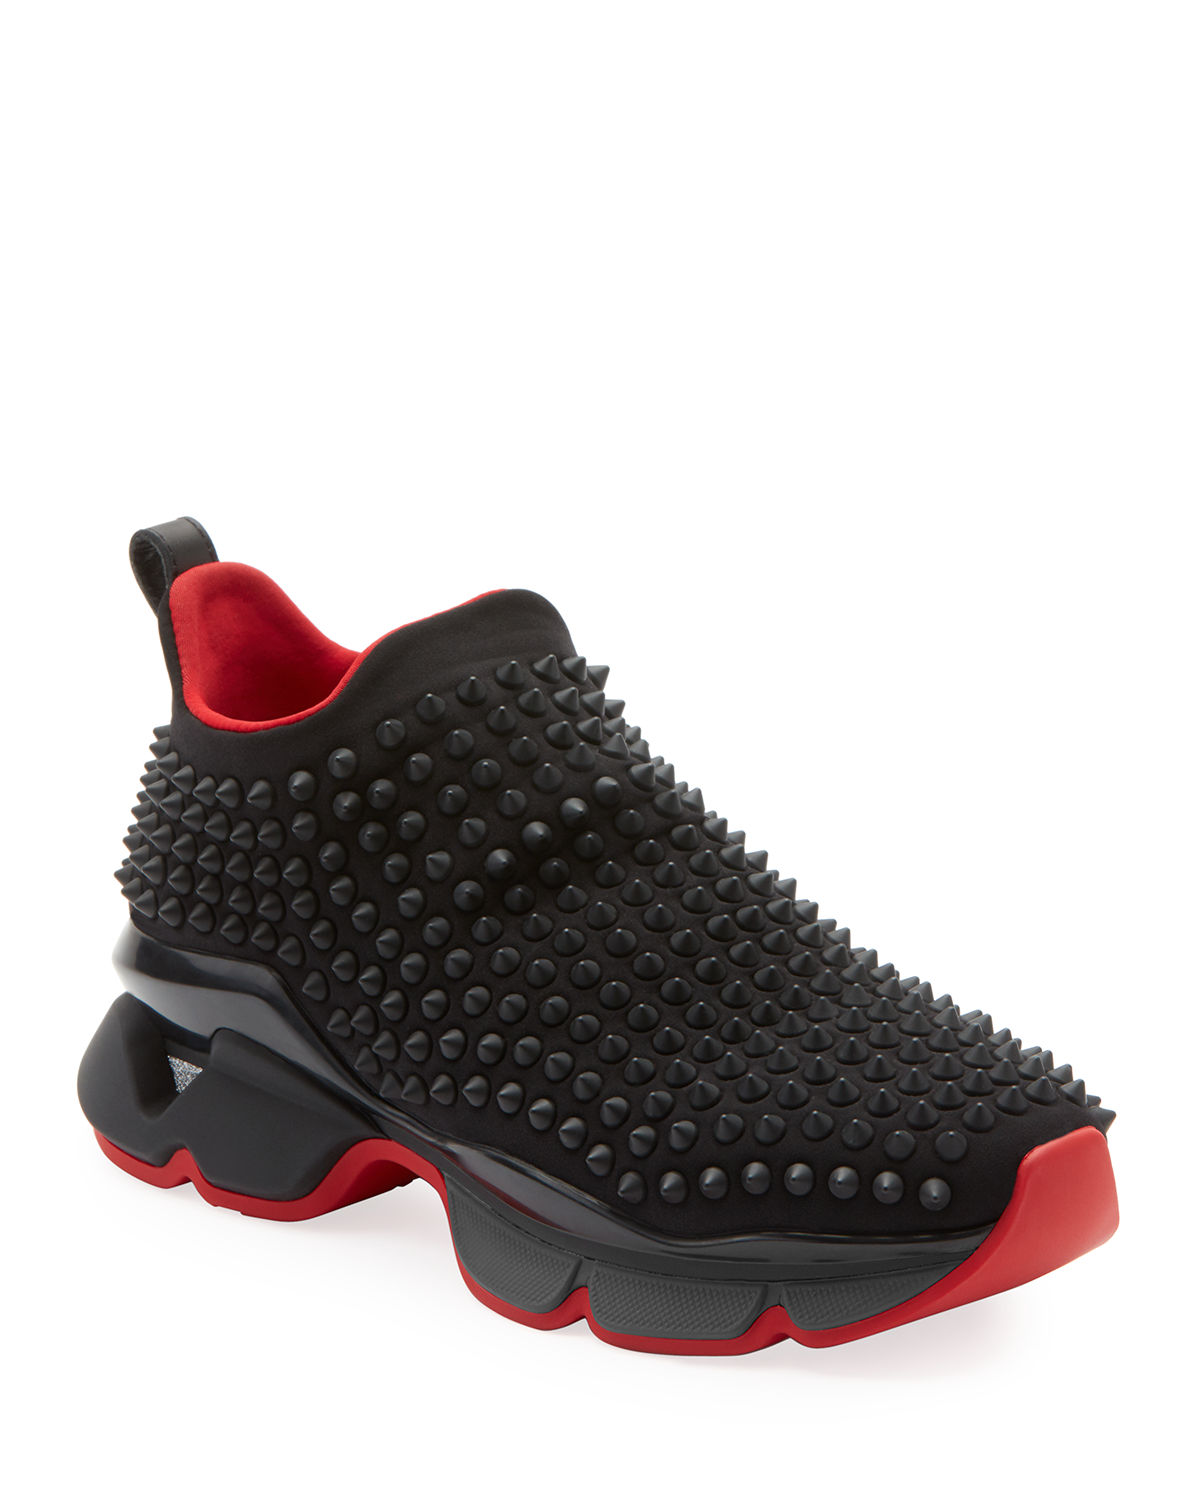 81a35926d9d2 Christian Louboutin Spike Sock Donna Red Sole Sneakers